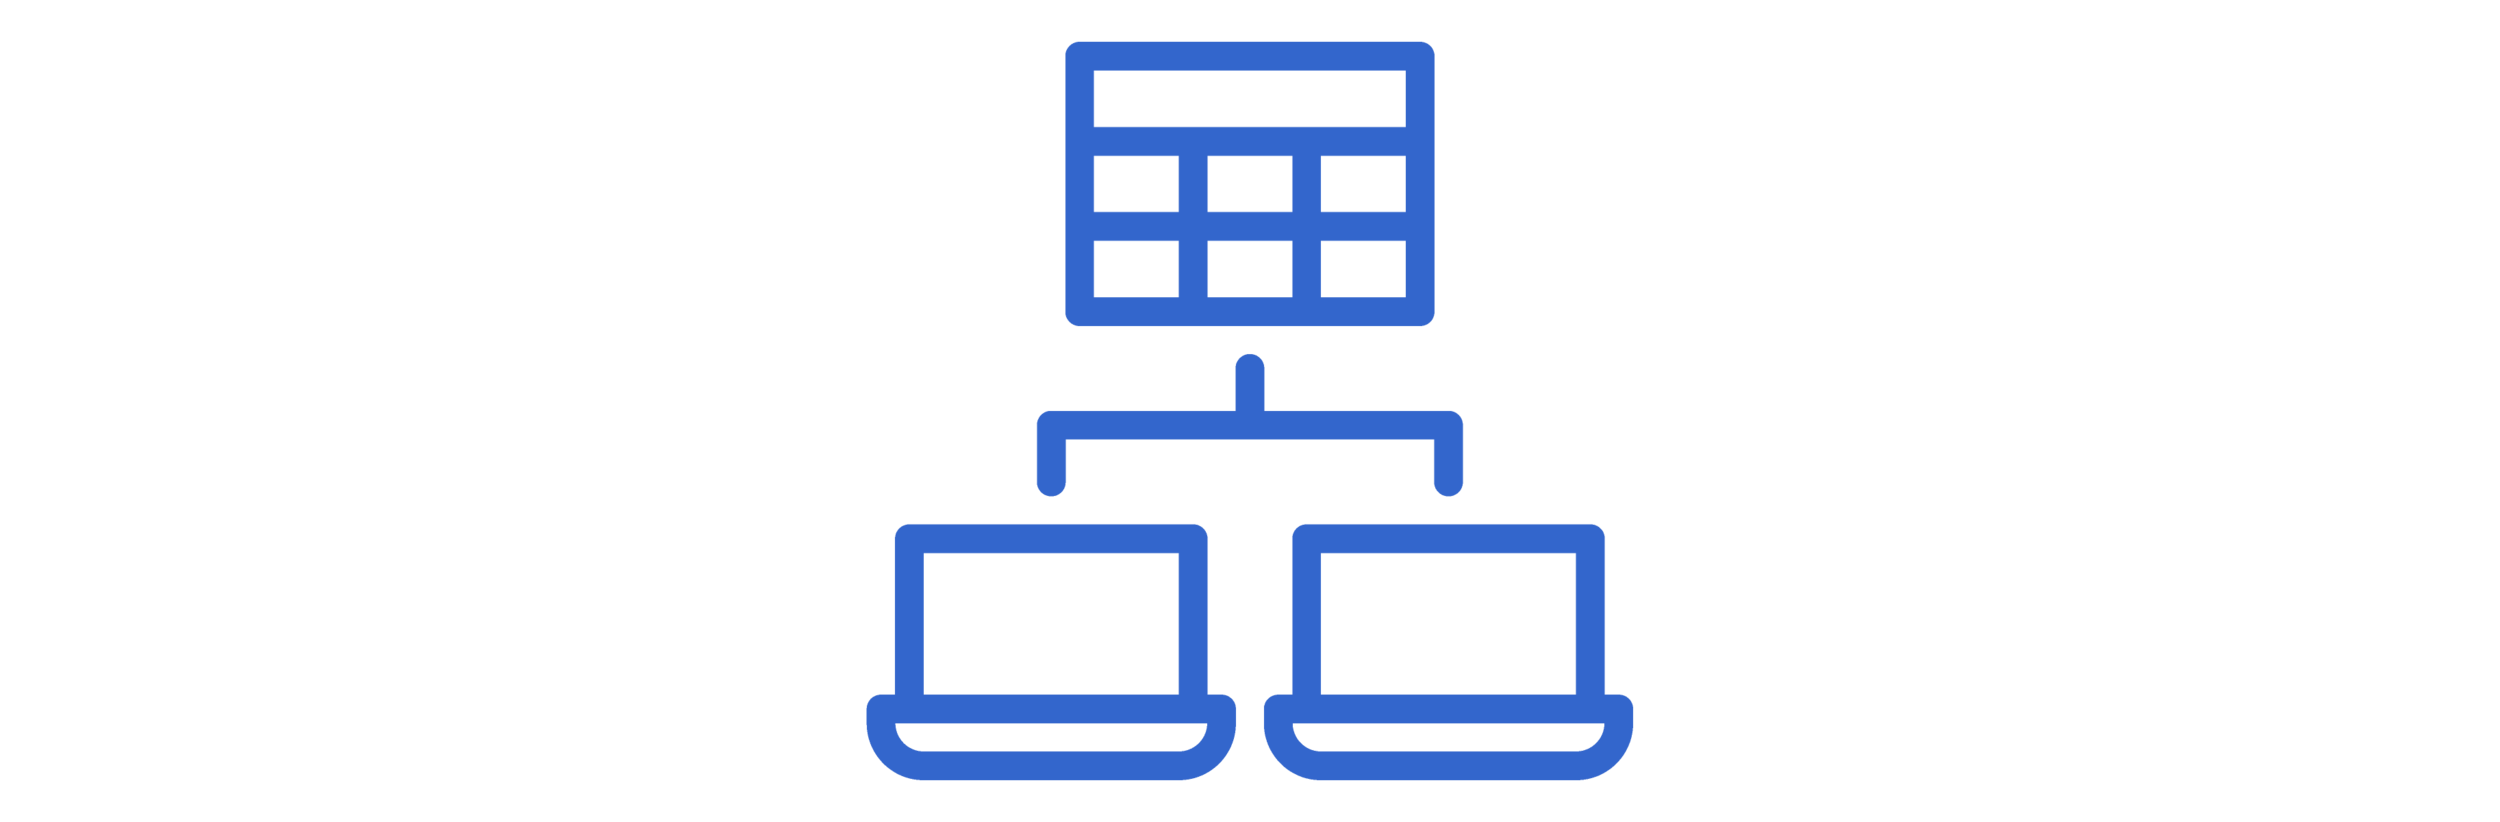 icon-Database-center.png